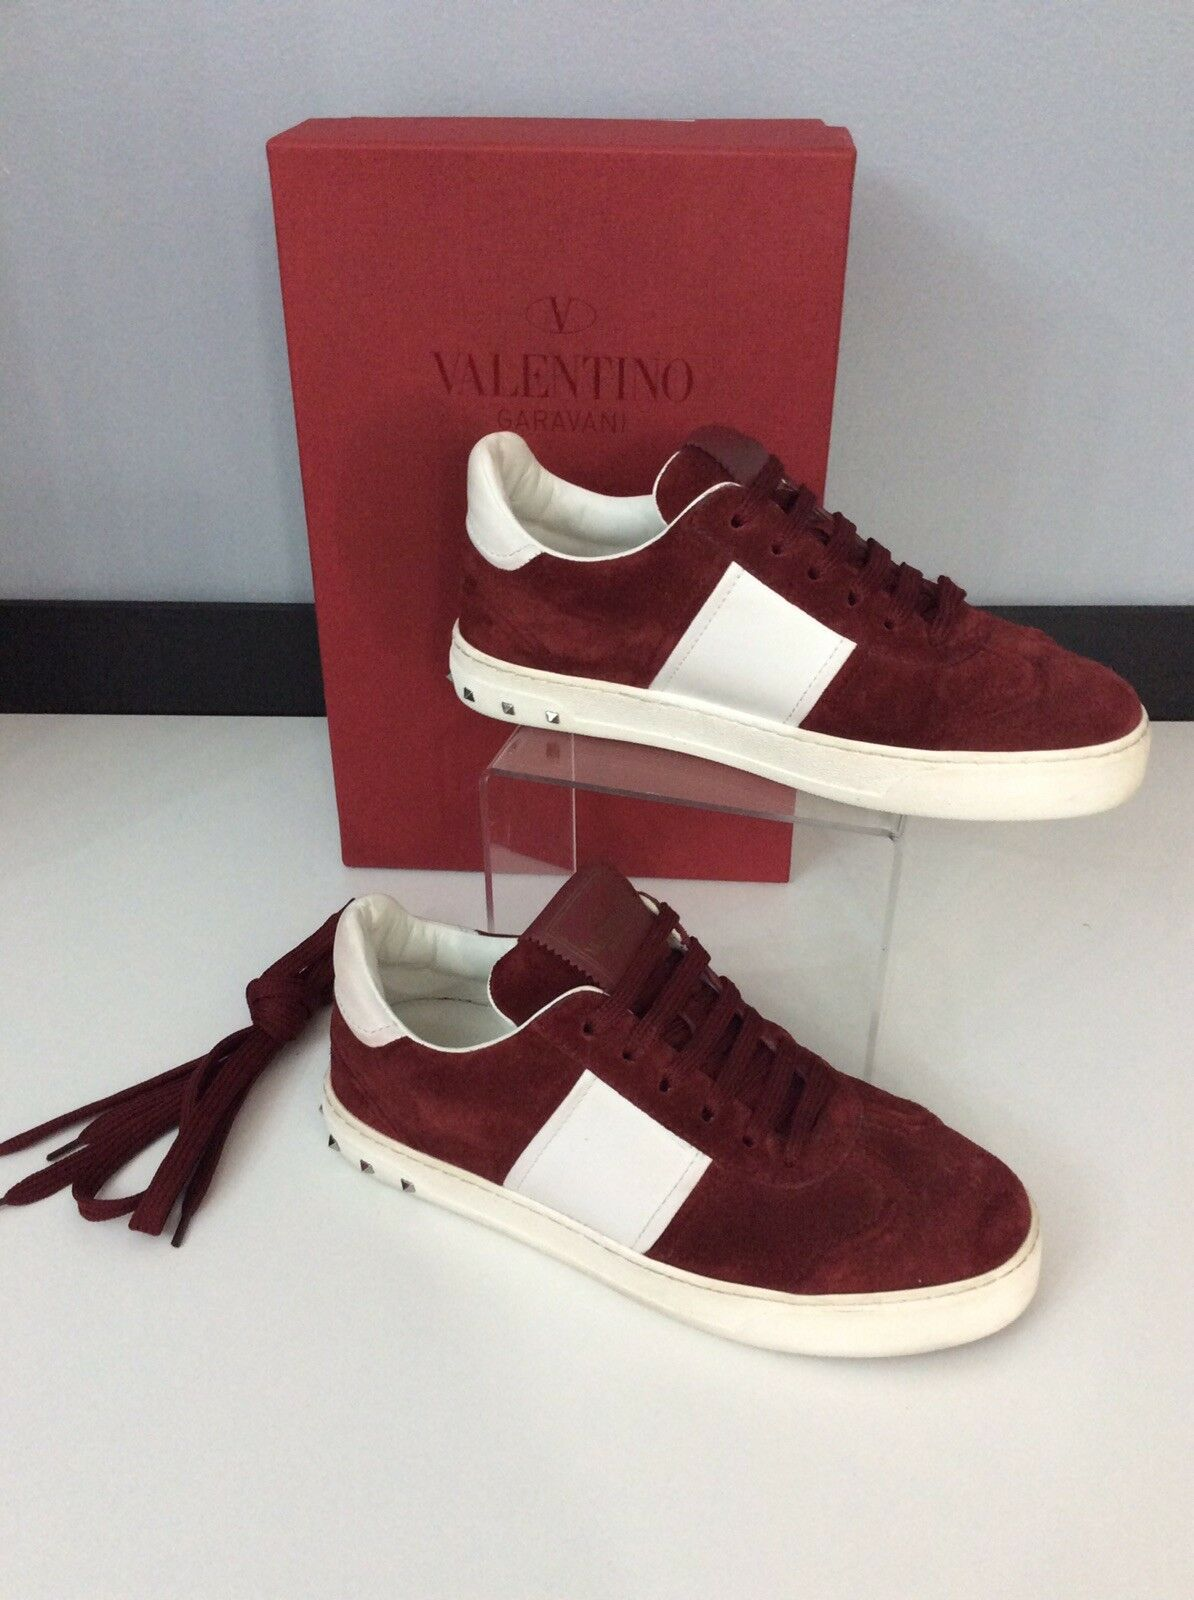 Valentino Sneakers Maroon Red White Suede Leather shoes Rockstud 36.5 Uk 3.5 Box